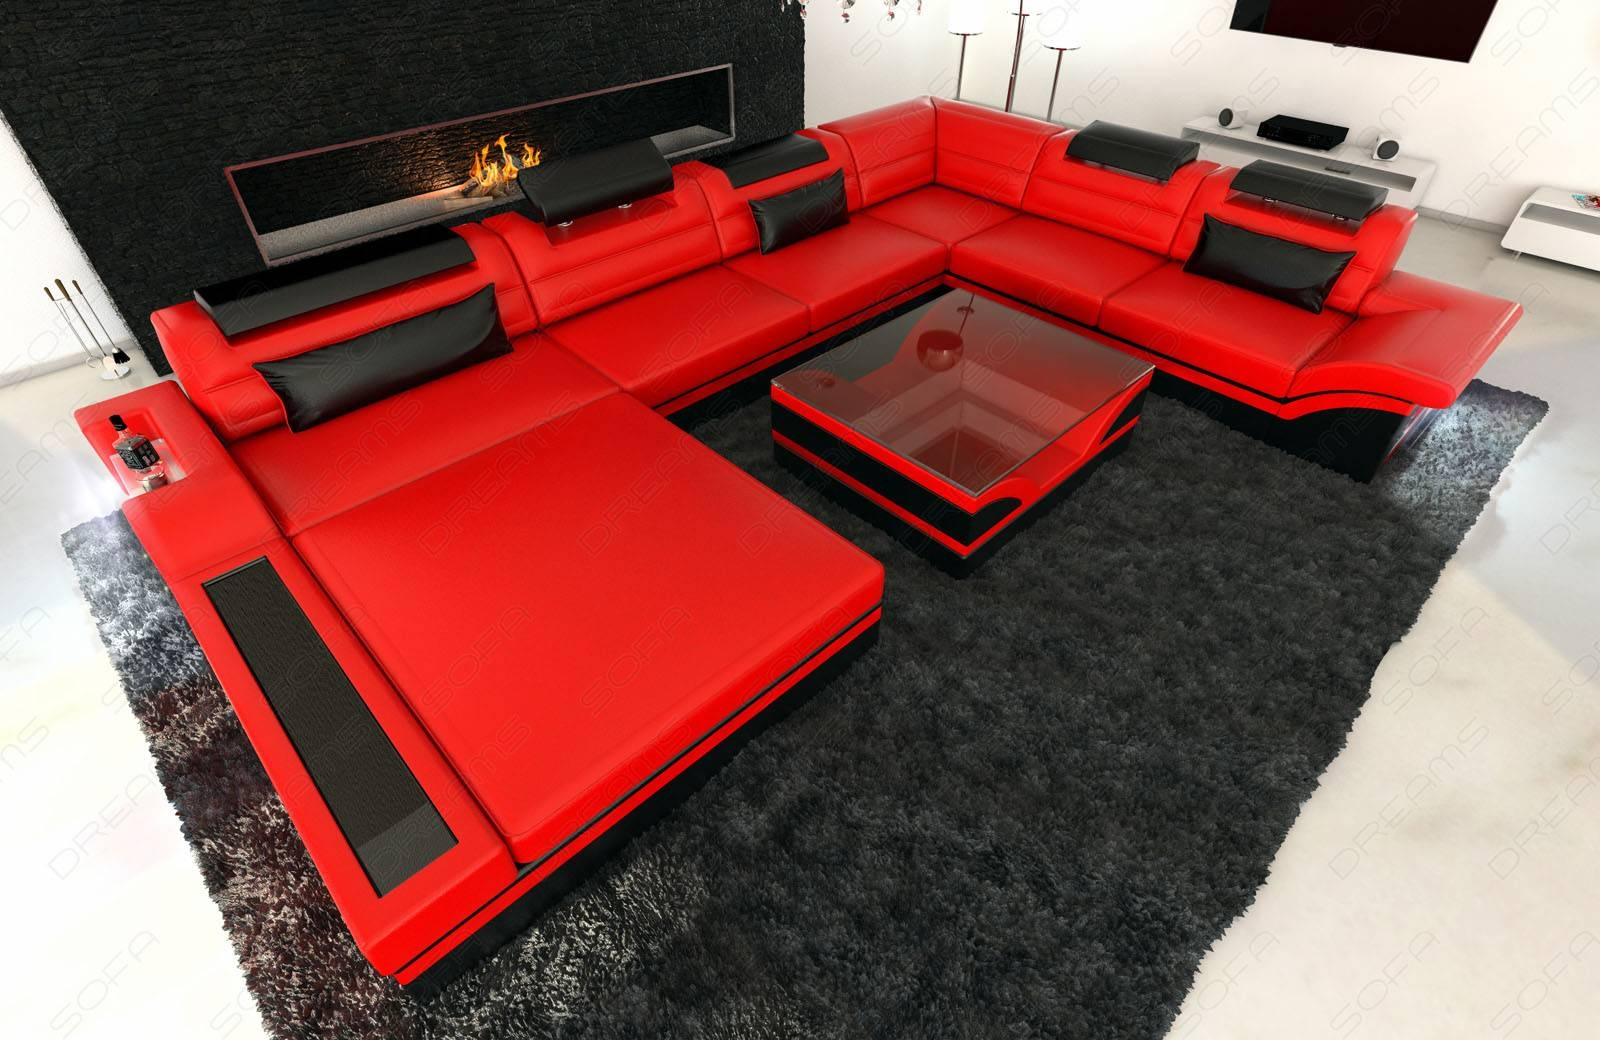 Design Sectional Sofa Mezzo Xxl With Led Lights Red Black | Ebay throughout Sofas With Lights (Image 8 of 30)